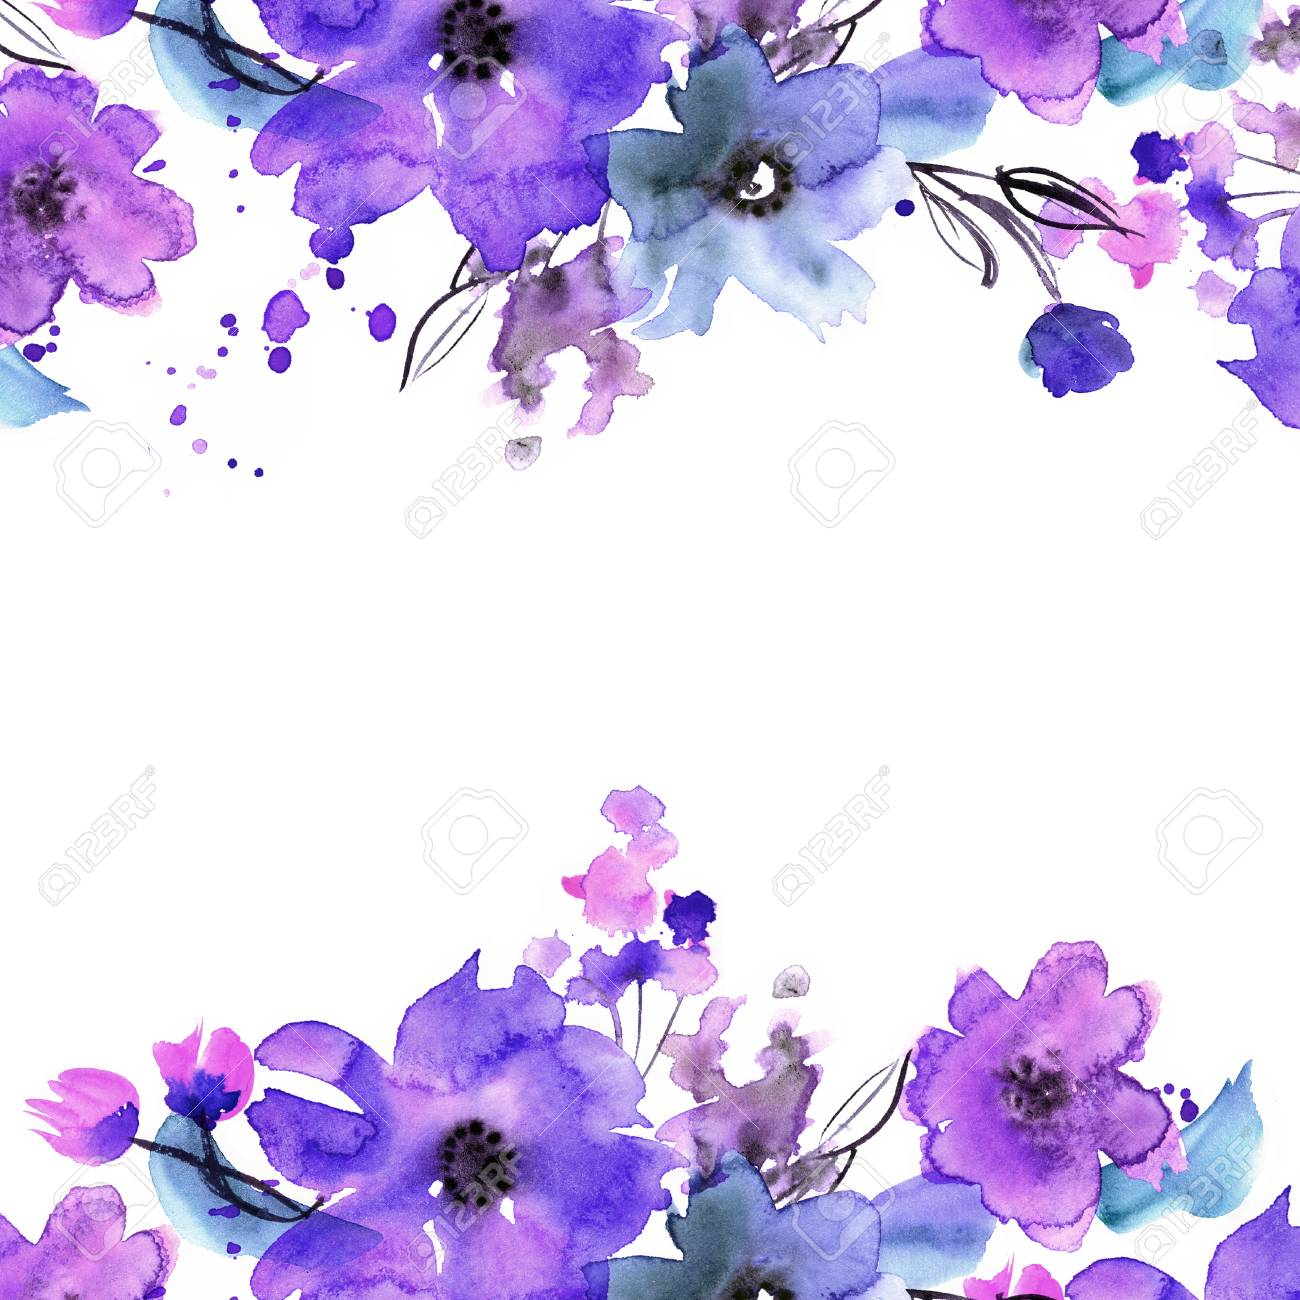 Watercolor Floral Background Hd